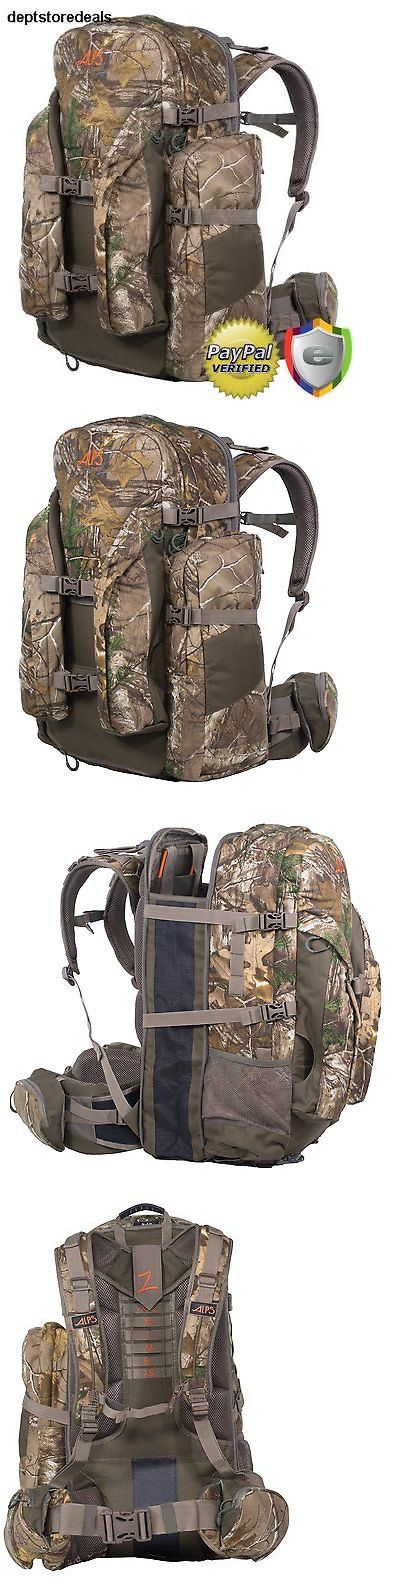 Hunting Bags and Packs 52503: Camo Hunting Backpack Camping Hiking Outdoor Back Pack Bow Rifle Hunt Camera Bag -> BUY IT NOW ONLY: $153.99 on eBay!